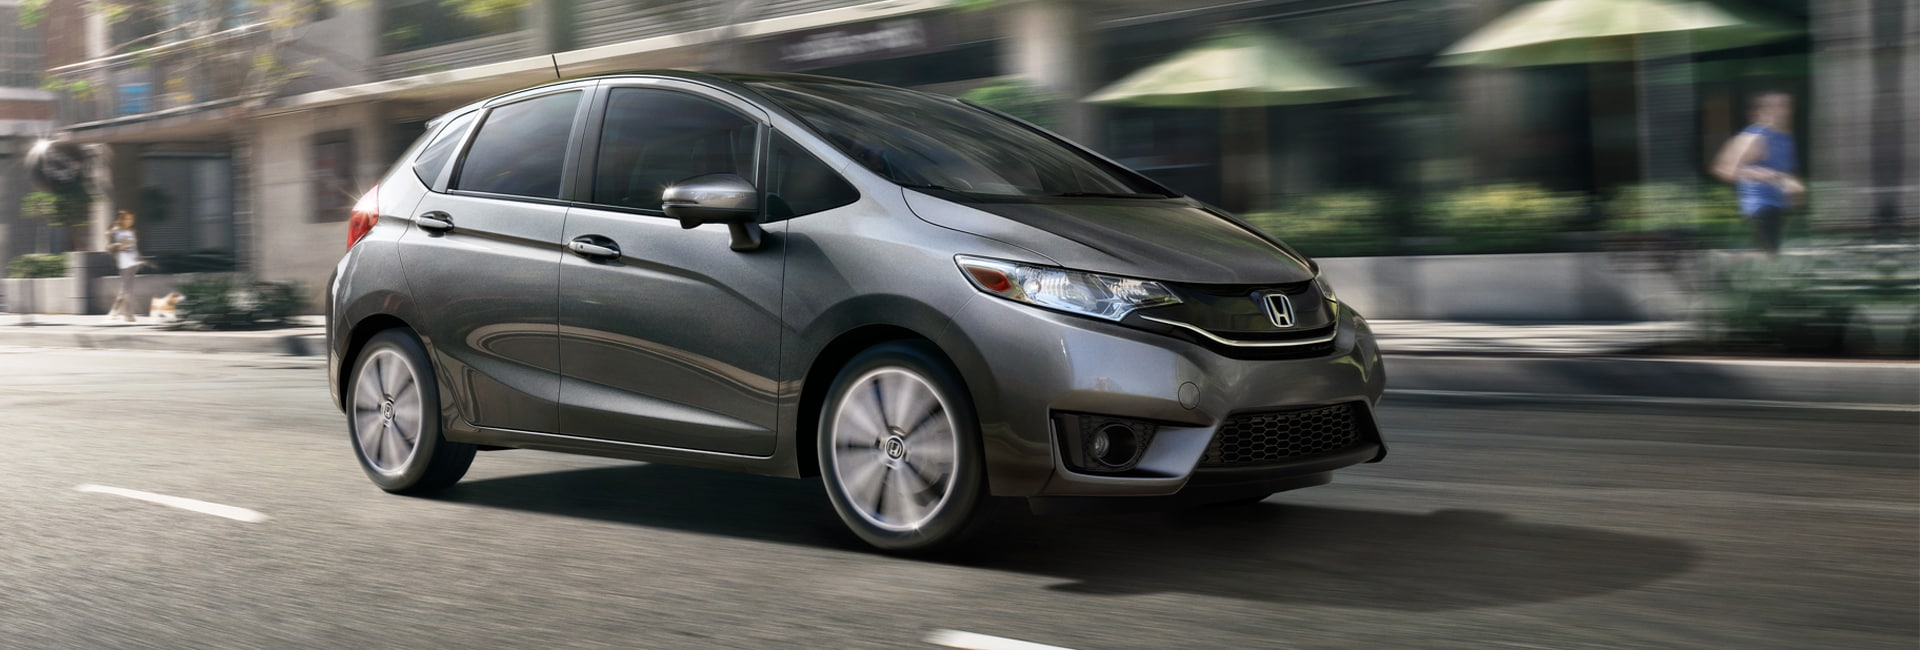 New 2018 Honda Fit Gray Exterior